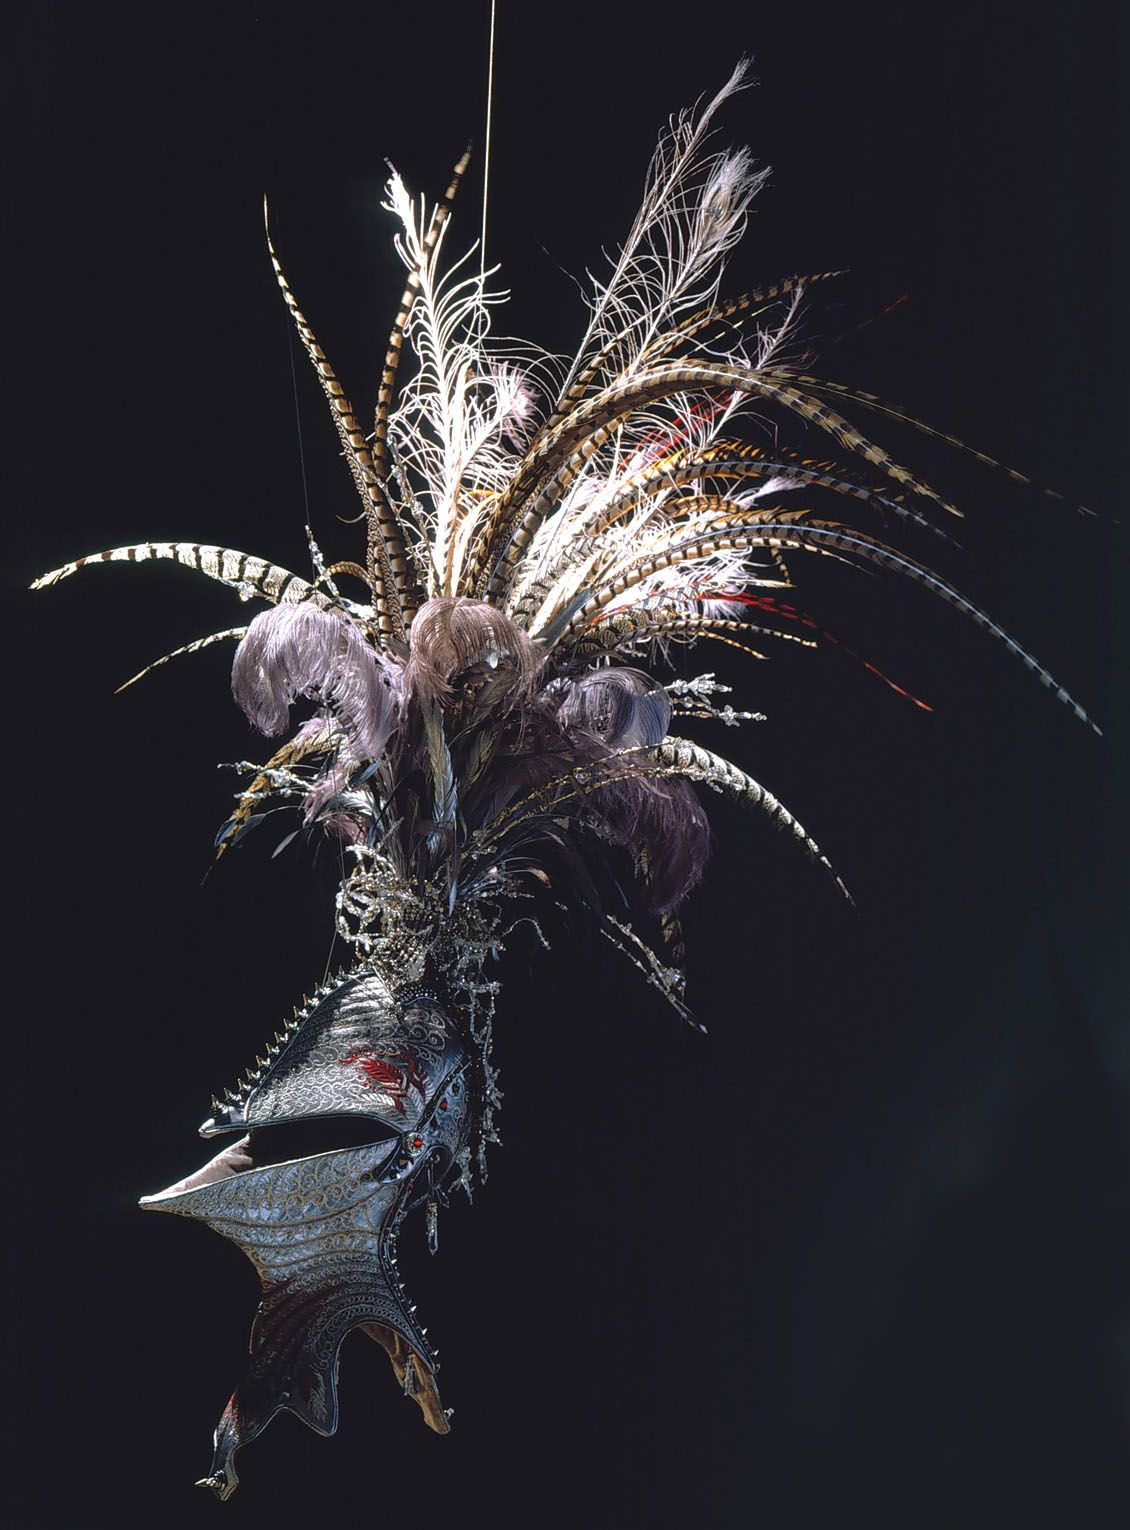 black embroidery with helmet and feathers by angelo filomeno